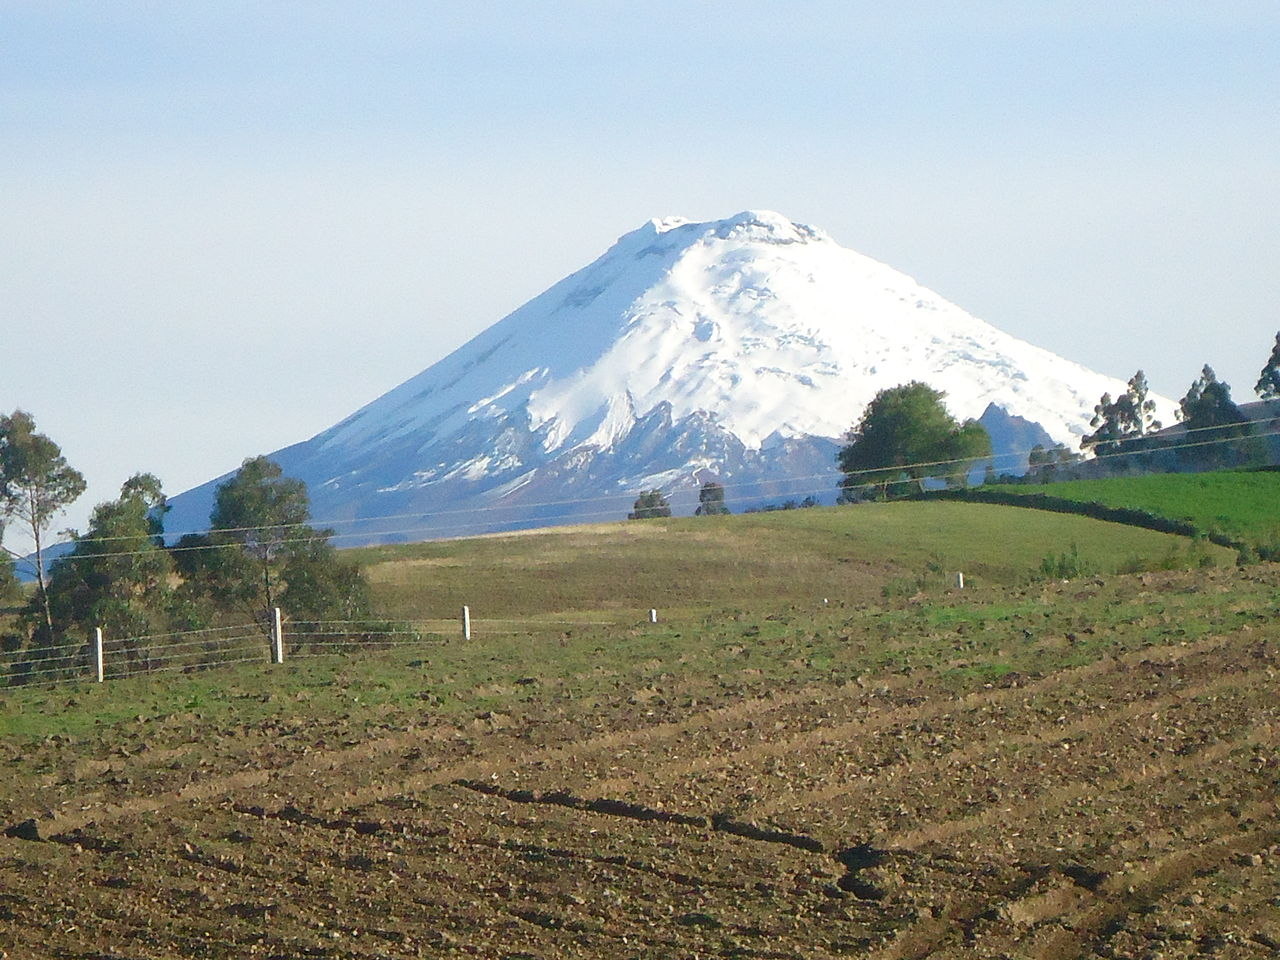 Cotopaxi by David C. S. Wikimedia Commons